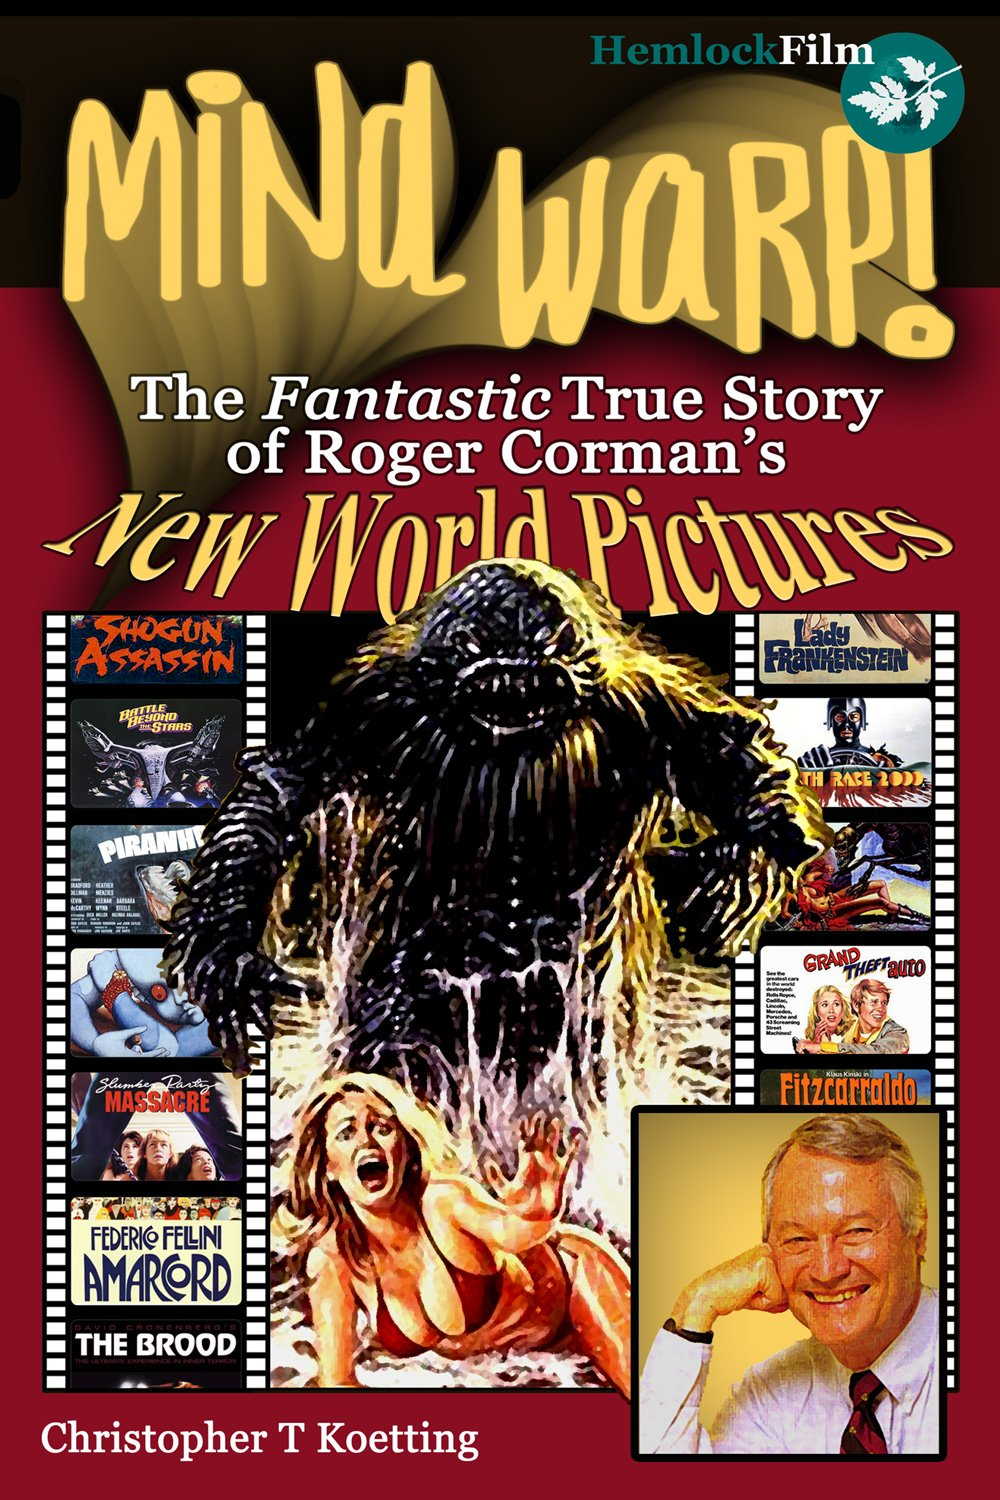 Mind Warp!: The Fantastic True Story of Roger Corman's New World Pictures pdf